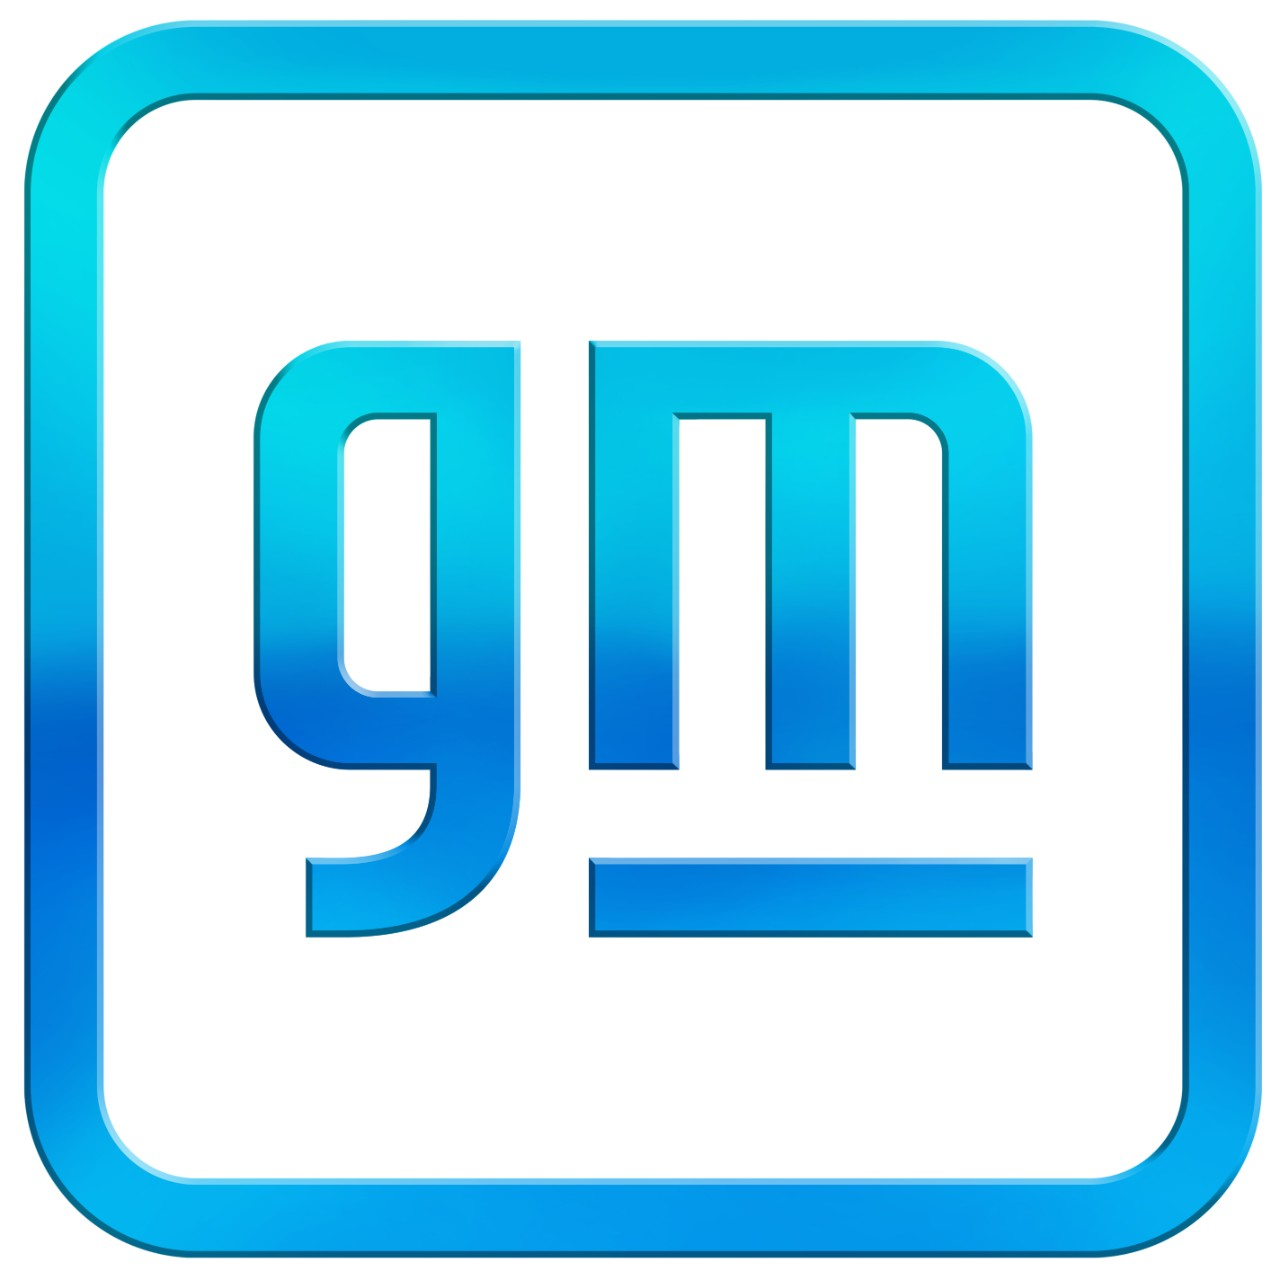 GM Stock Price Exceeds $50: Why It Happened